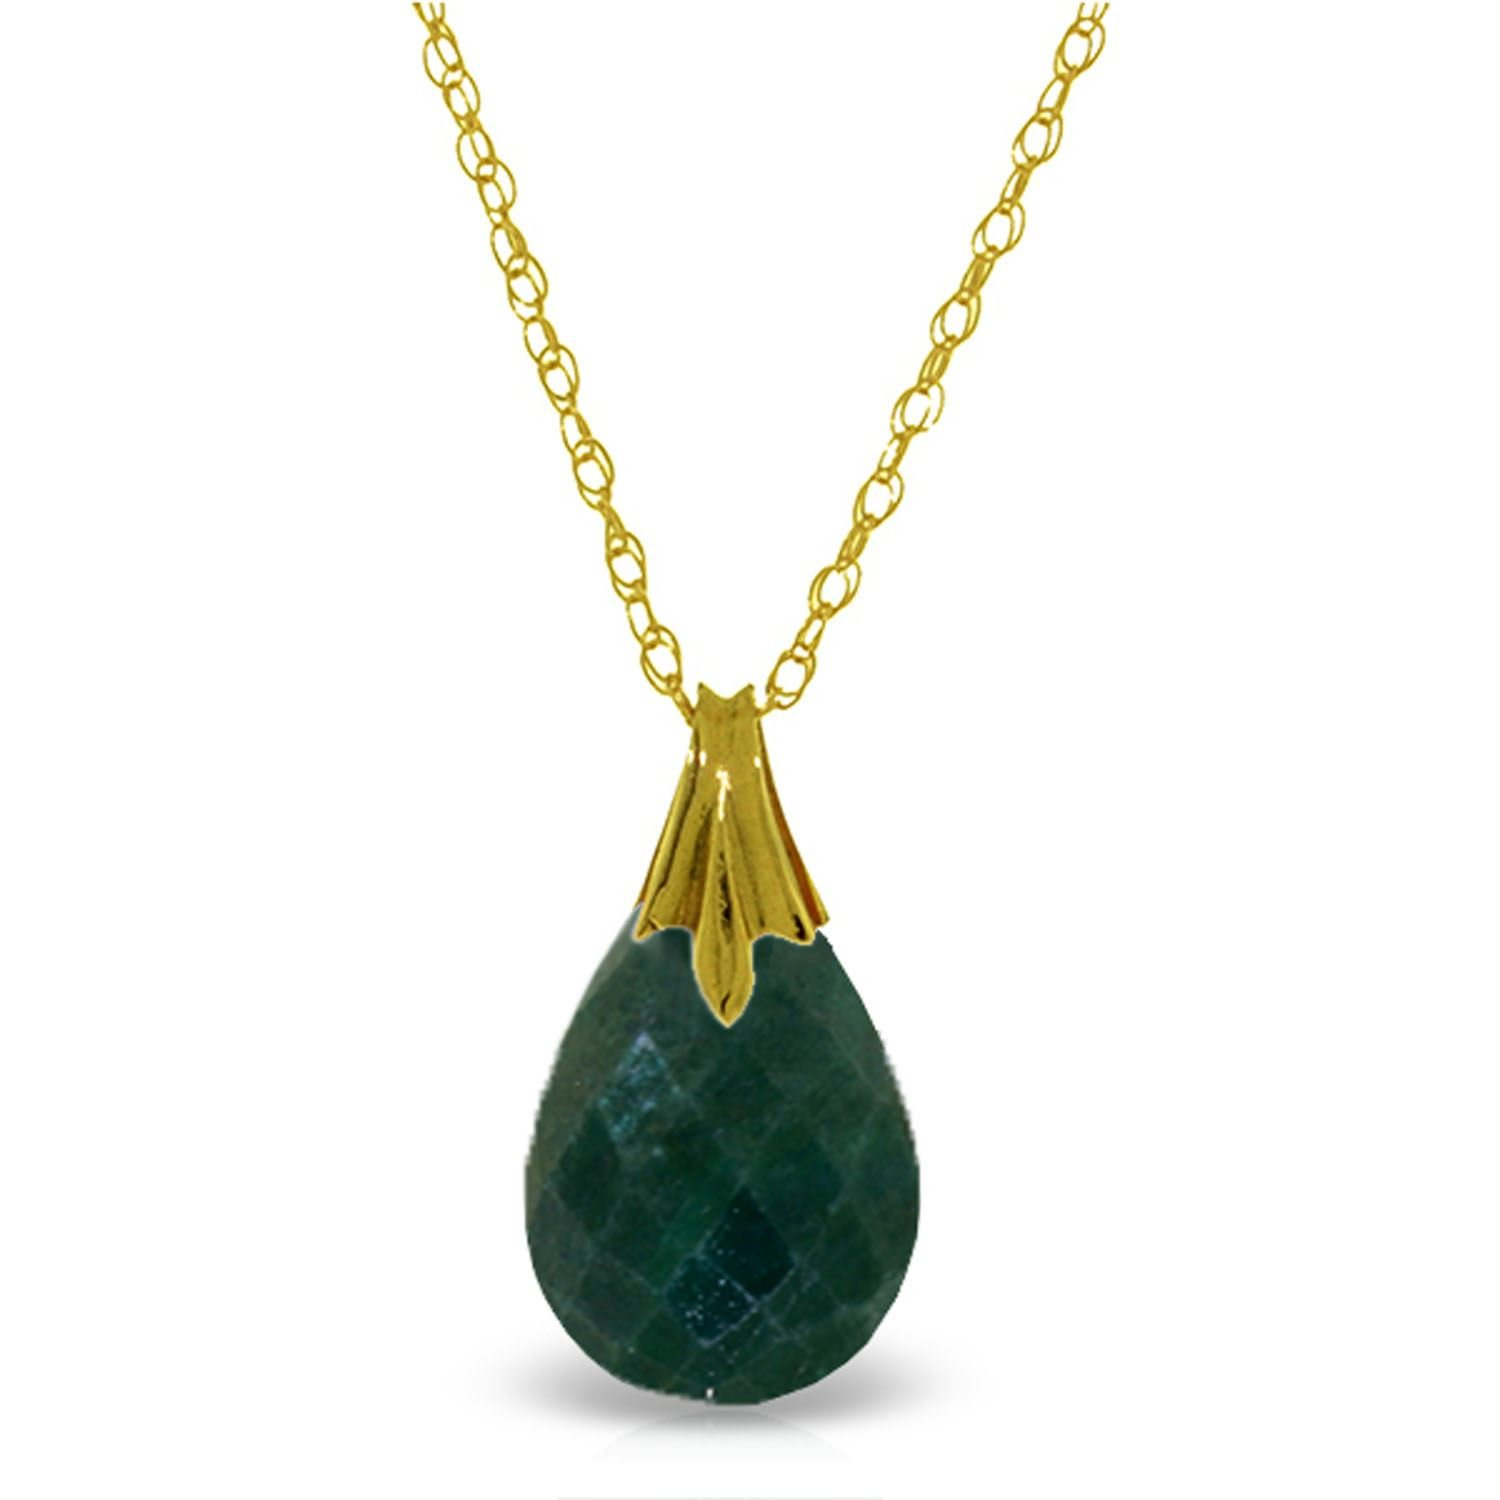 ALARRI 14K Solid Gold Necklace w/ Natural Diamondyed Green Sapphire with 24 Inch Chain Length